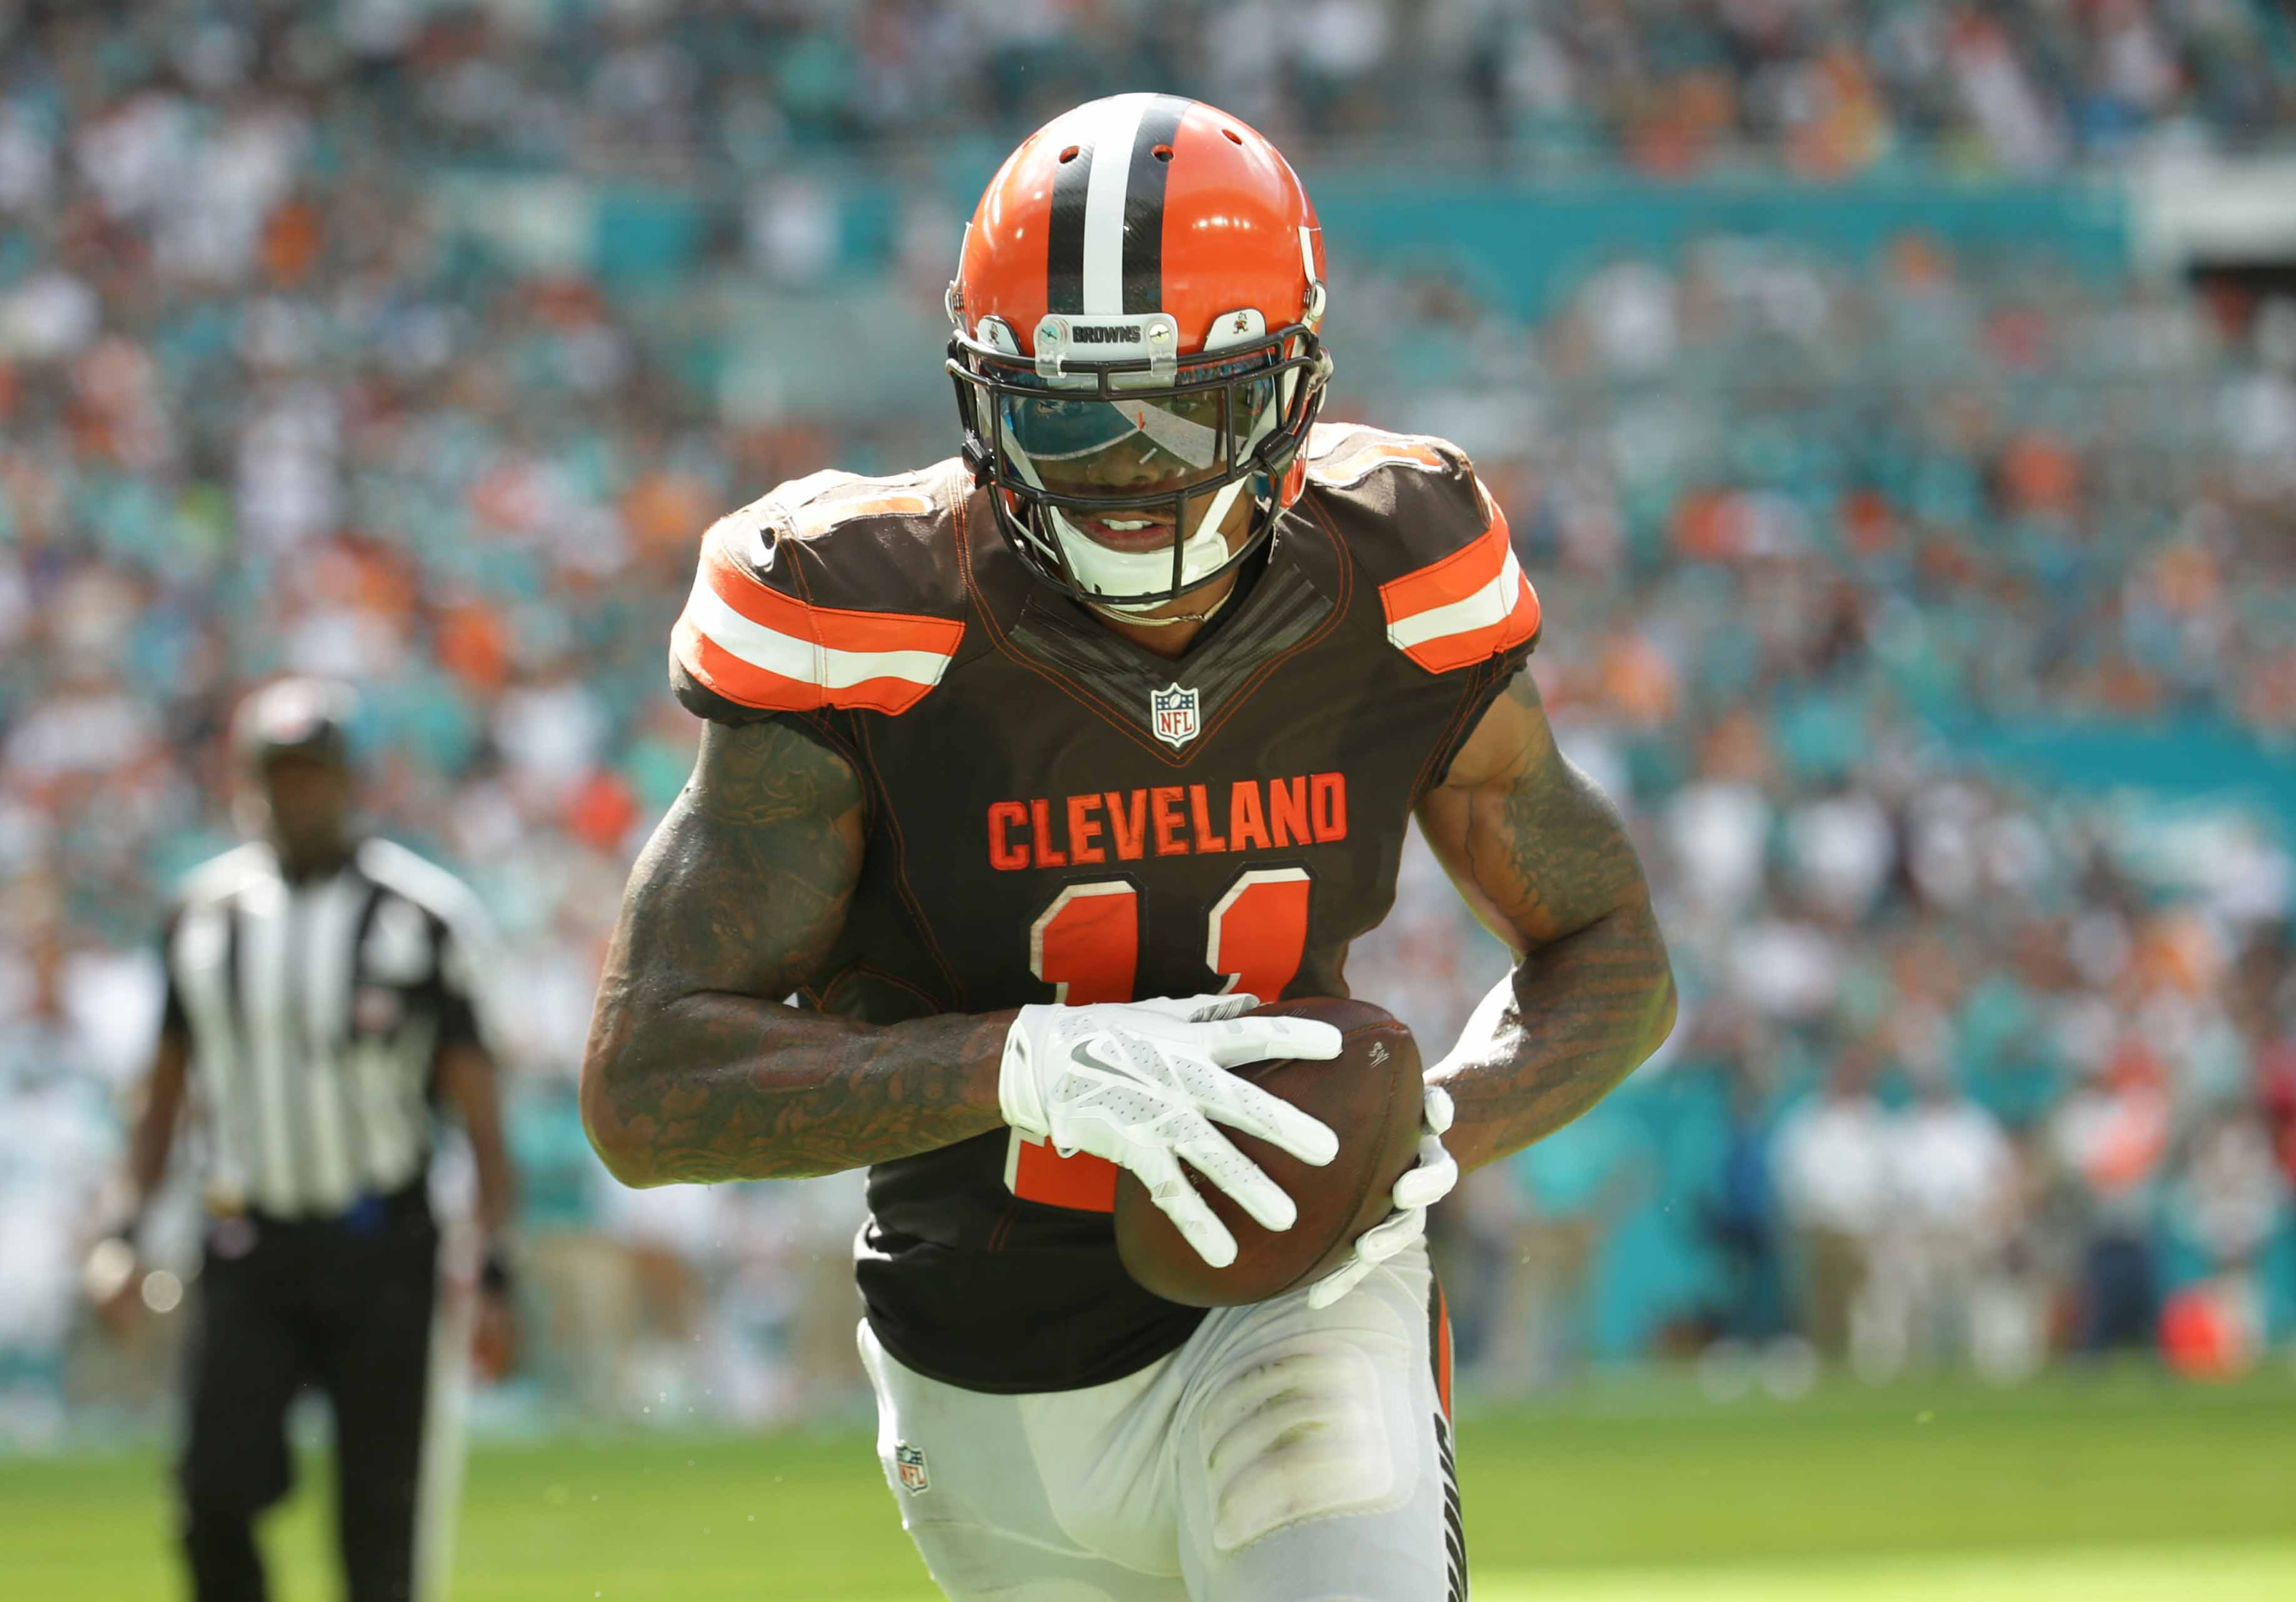 Cleveland Browns wide receiver Terrelle Pryor (11) runs for a touchdown during the second half of an NFL football game against the Miami Dolphins, Sunday, Sept. 25, 2016, in Miami Gardens, Fla. (AP Photo/Lynne Sladky)